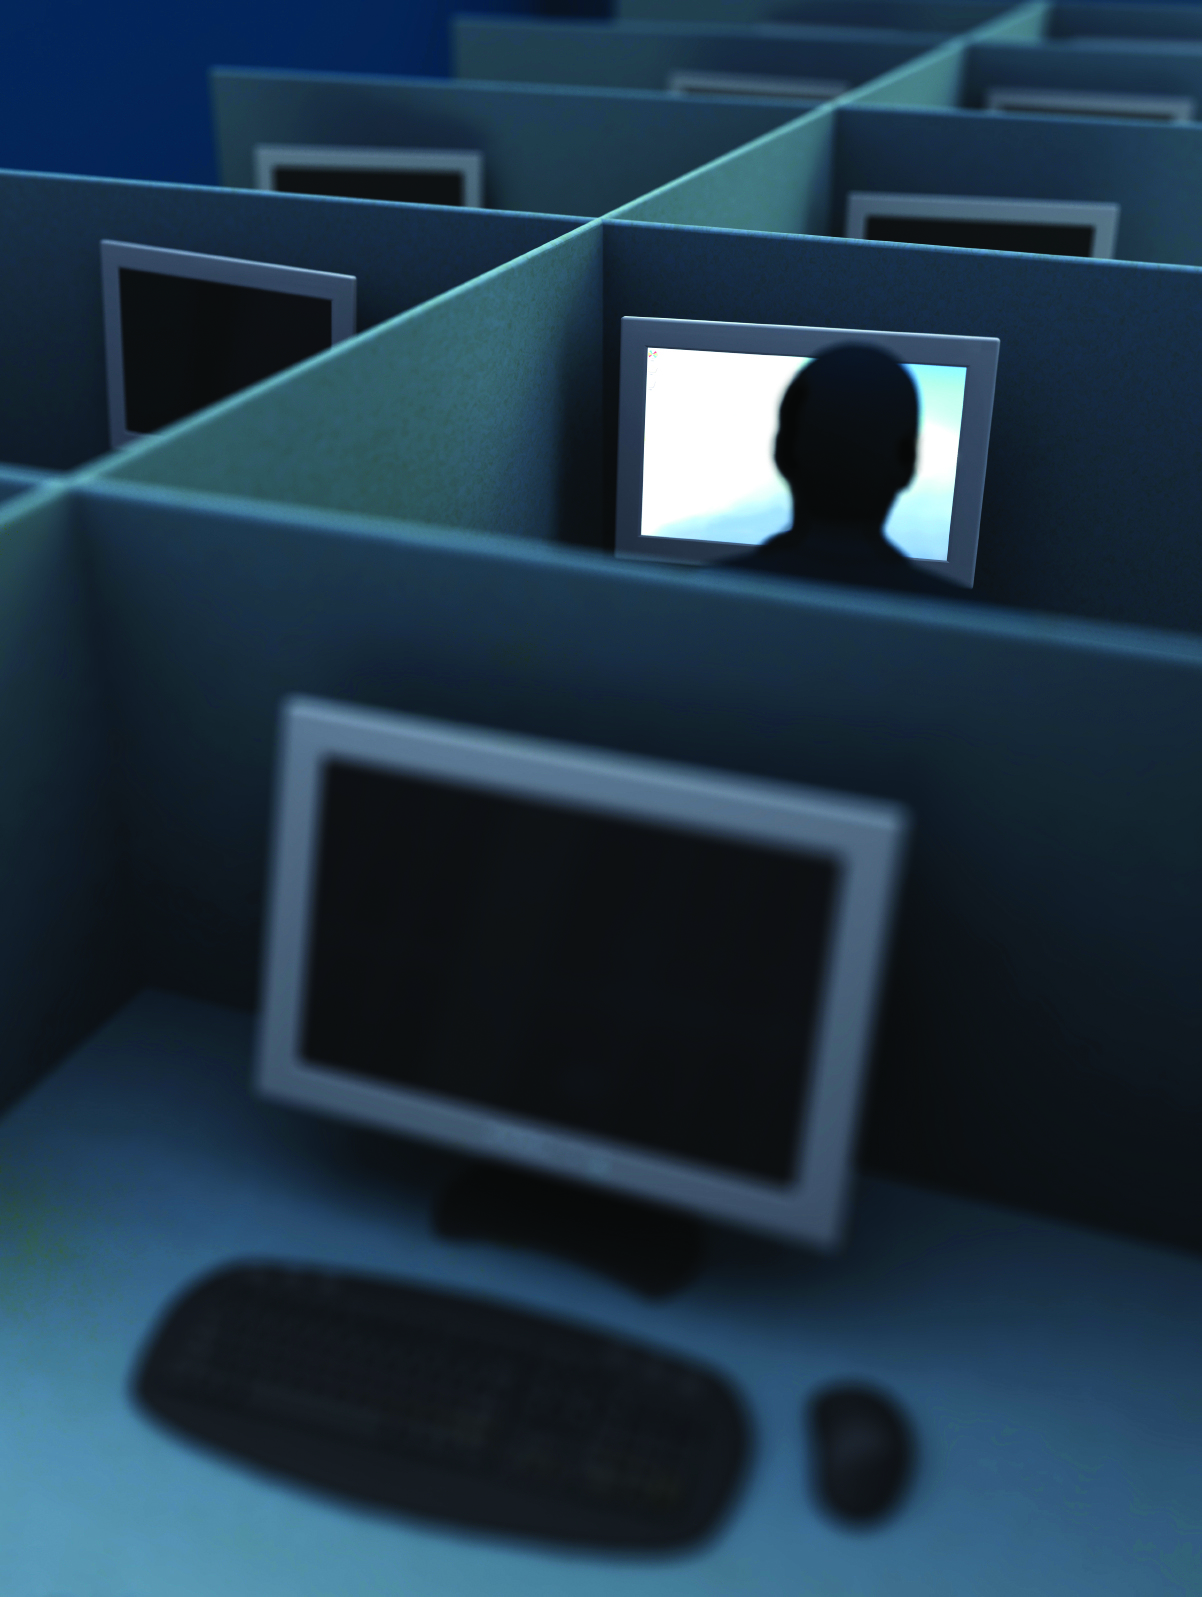 Ftc Issues Final Order And Data Security Lessons In Labmd Case After Hours